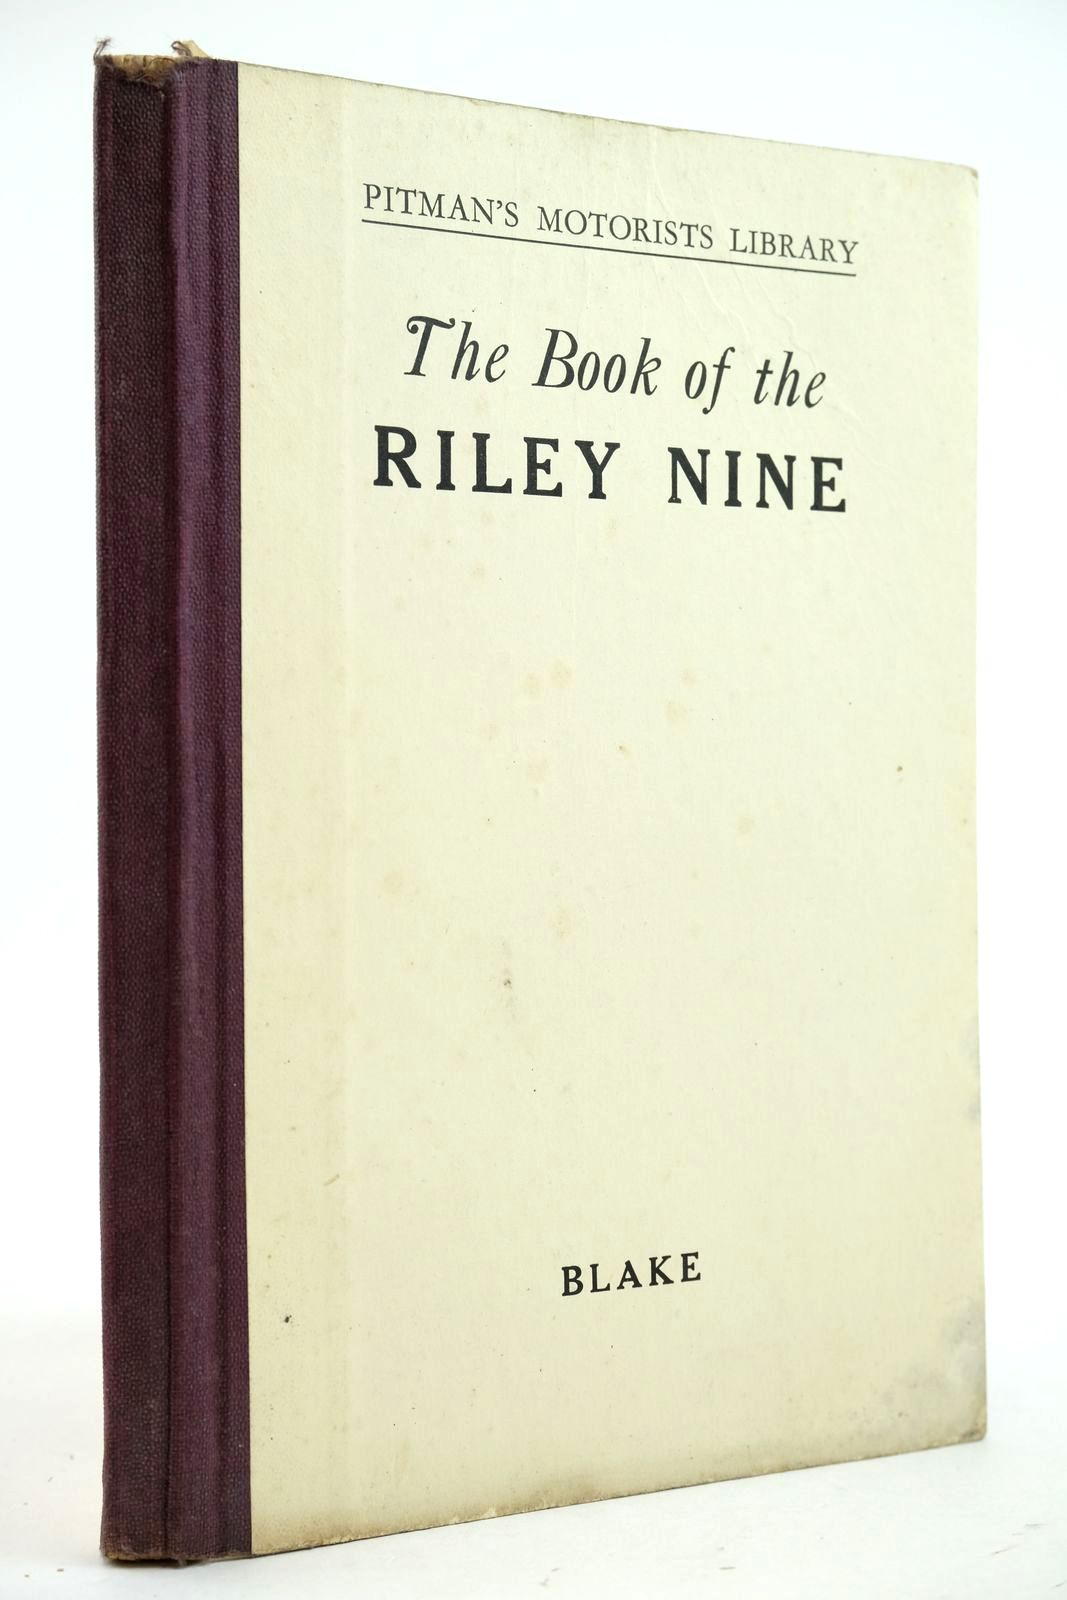 Photo of THE BOOK OF THE RILEY NINE written by Blake, R.A. published by Sir Isaac Pitman & Sons Ltd. (STOCK CODE: 2132972)  for sale by Stella & Rose's Books